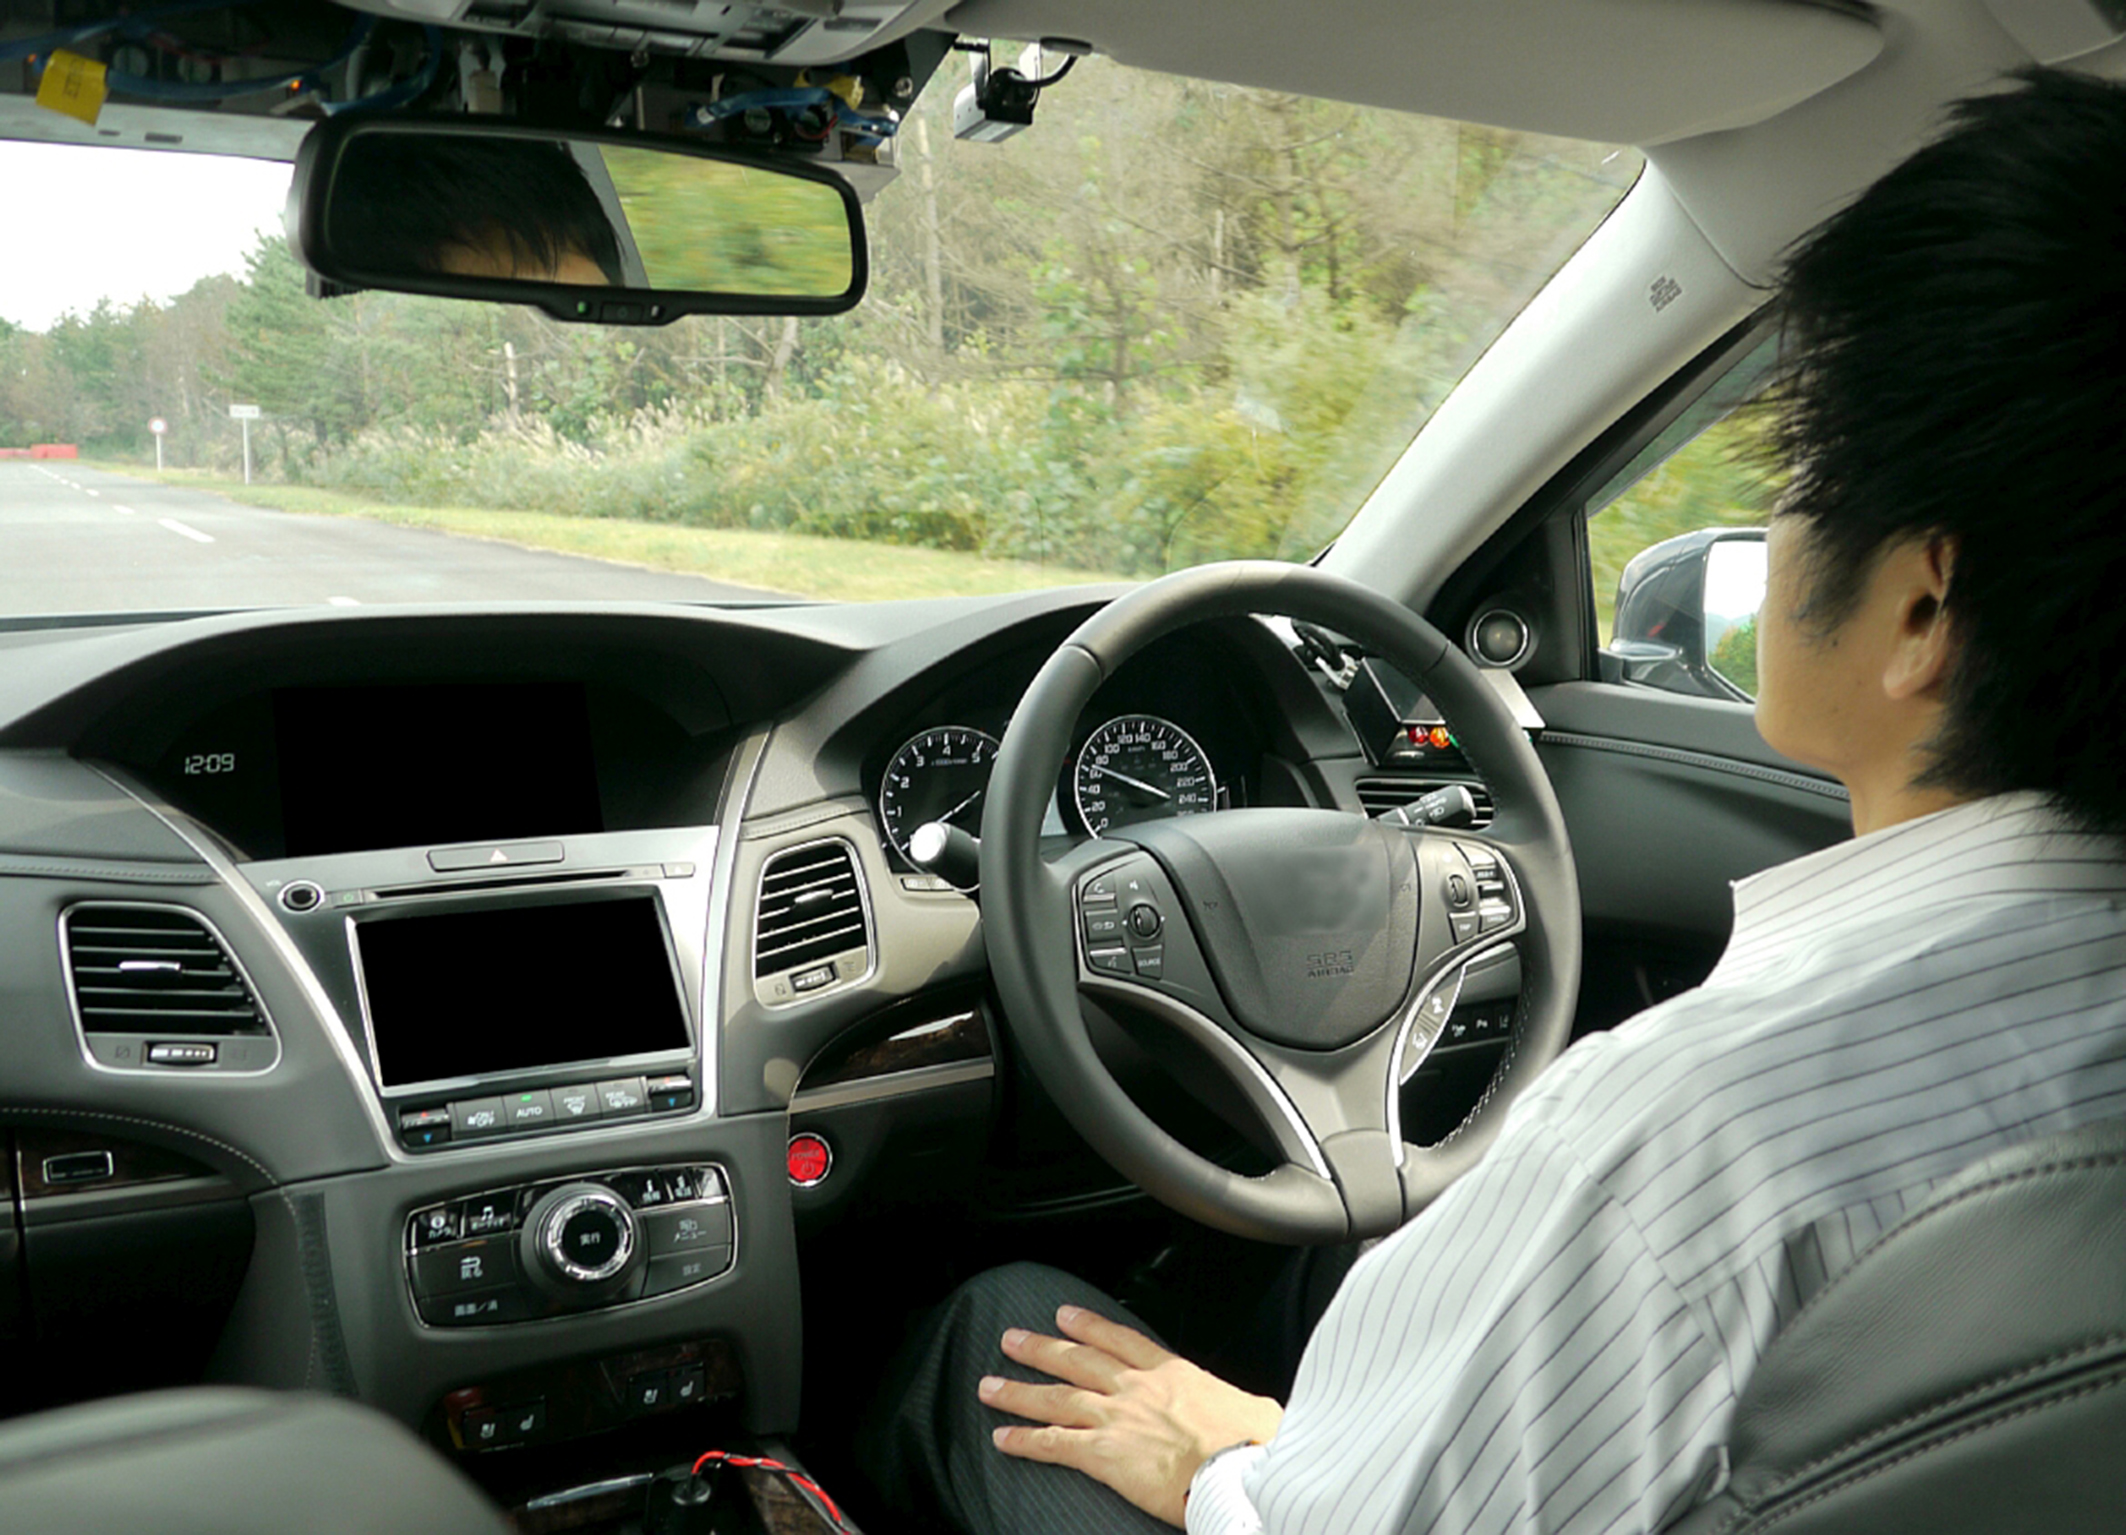 Bosch now testing automated driving on roads in Japan as well